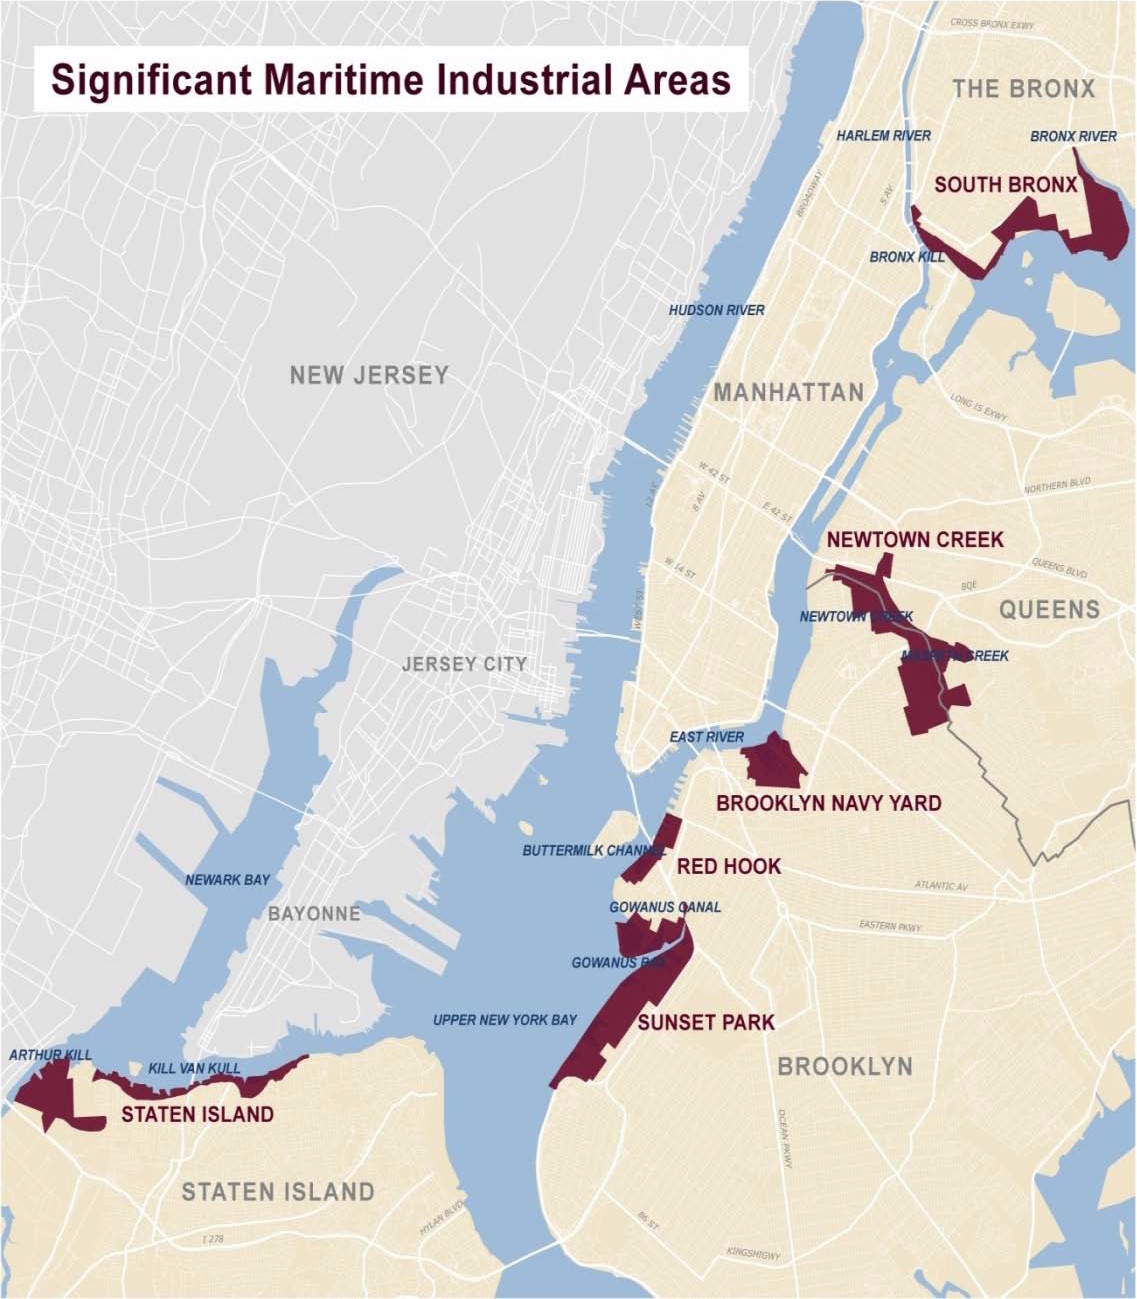 Significant maritime industrial areas in New York